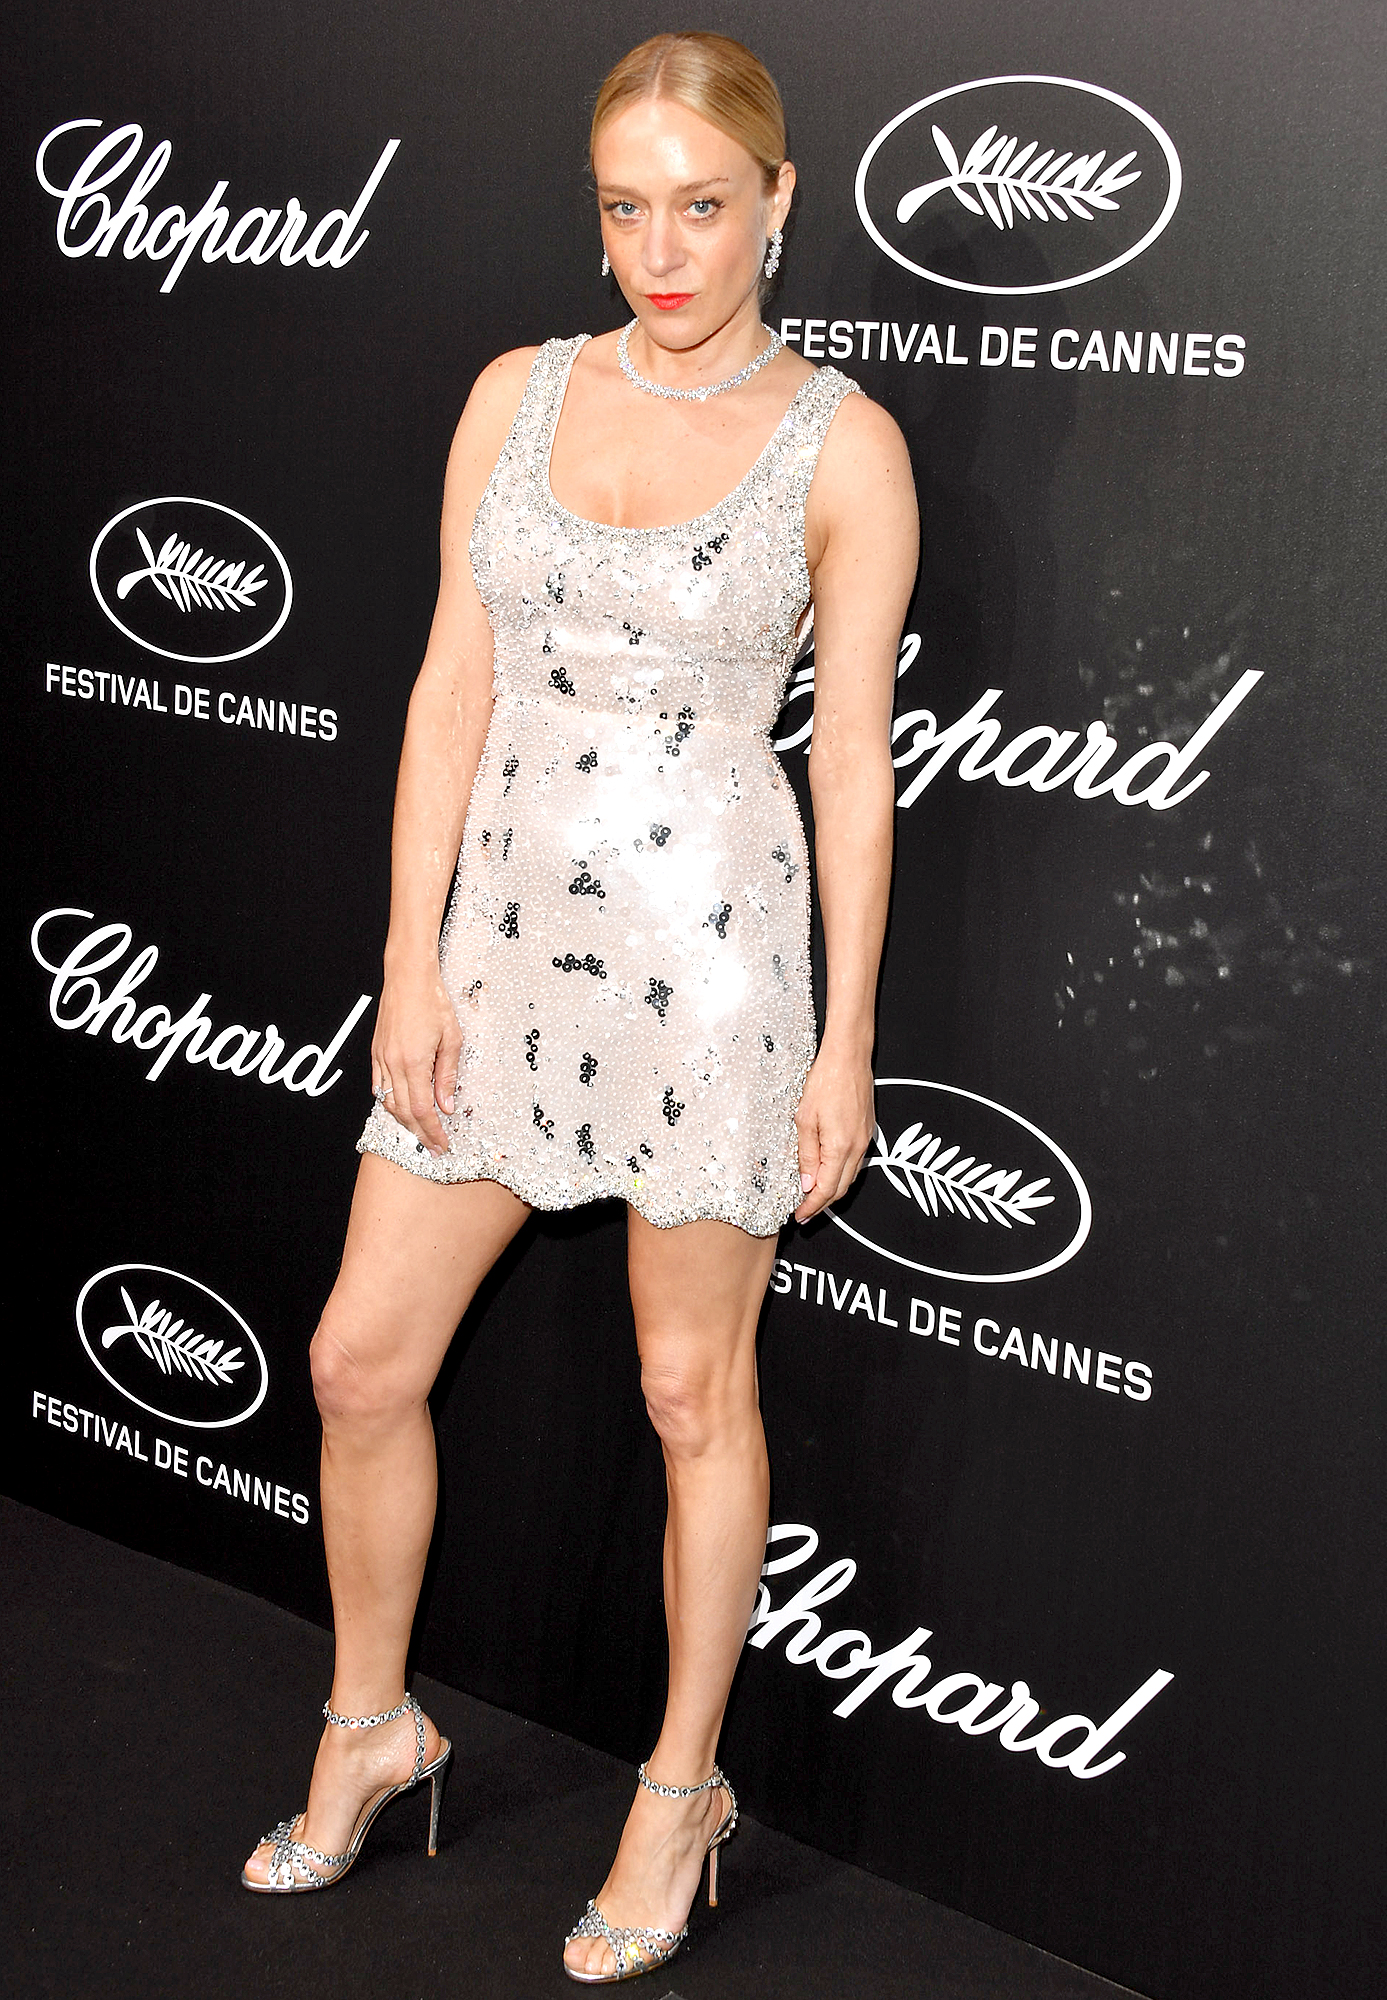 Chloe-Sevigny - Keeping things short and sweet, the actress opted for a sequined Miu Miu mini and Chopard bling at the jeweler's Trophy Event on Monday, May 20.